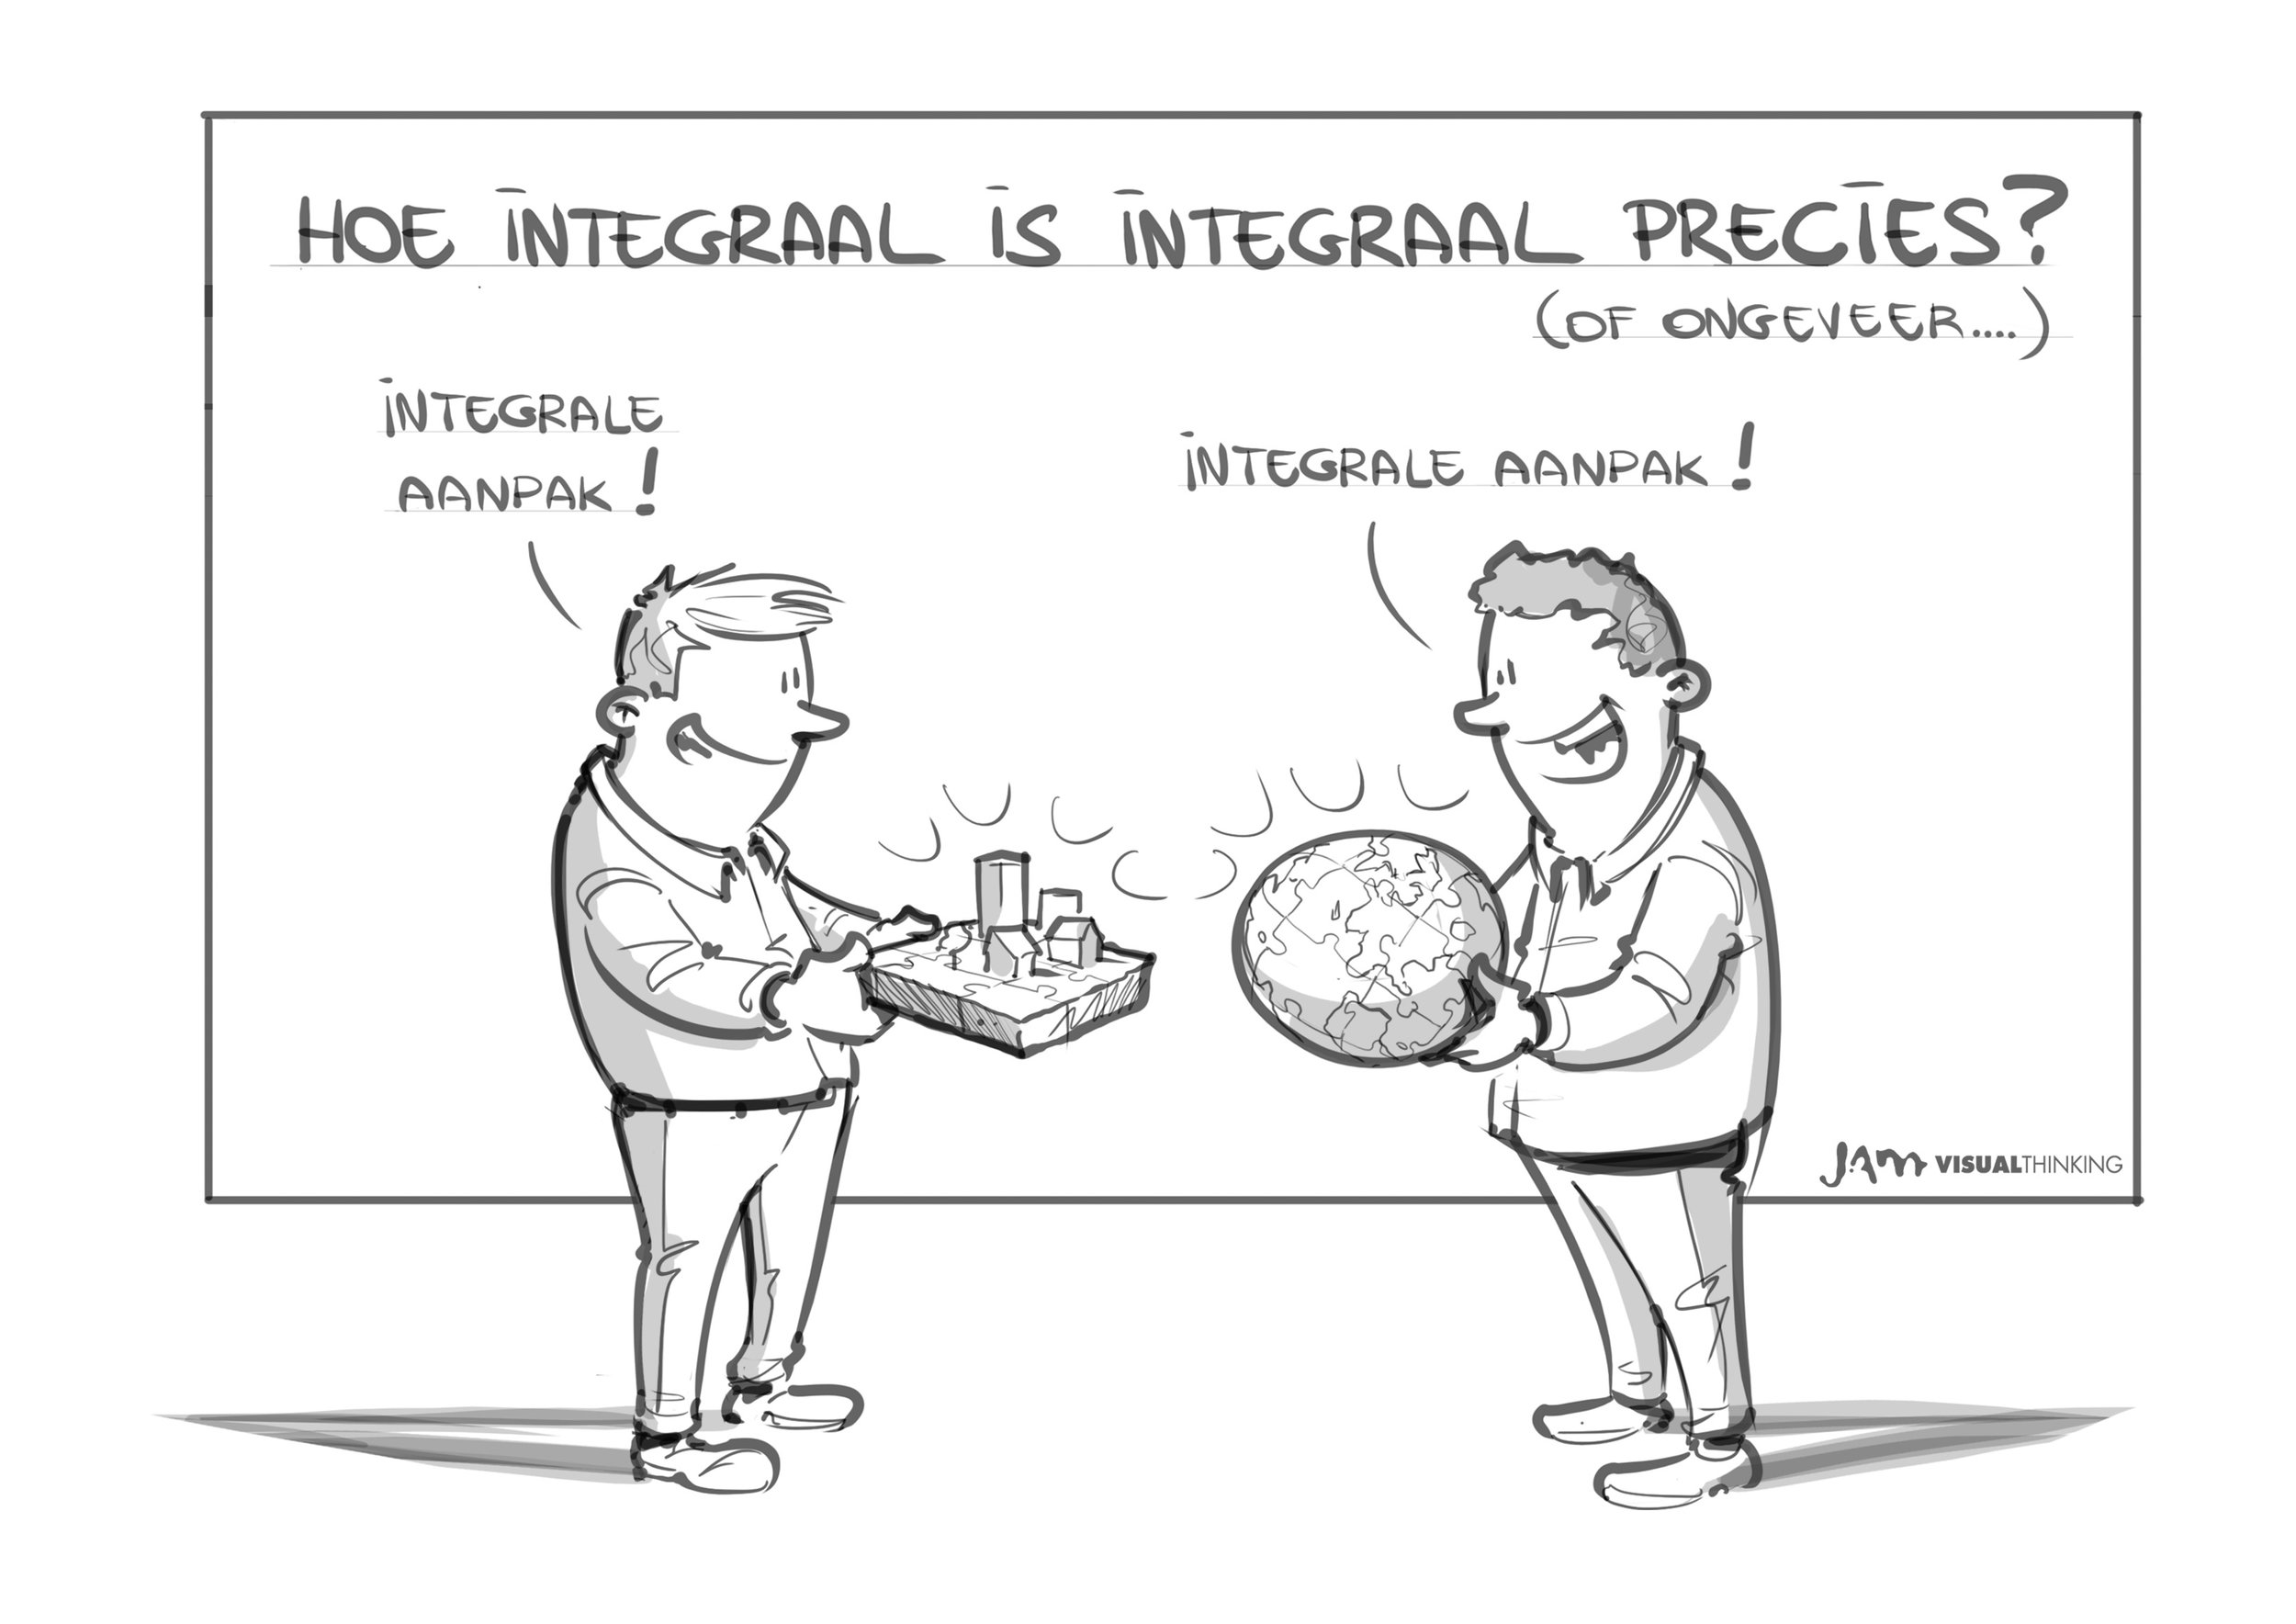 Cartoon 001 (Intergale aanpak) - de Wereld van JAM visual thinking.jpg